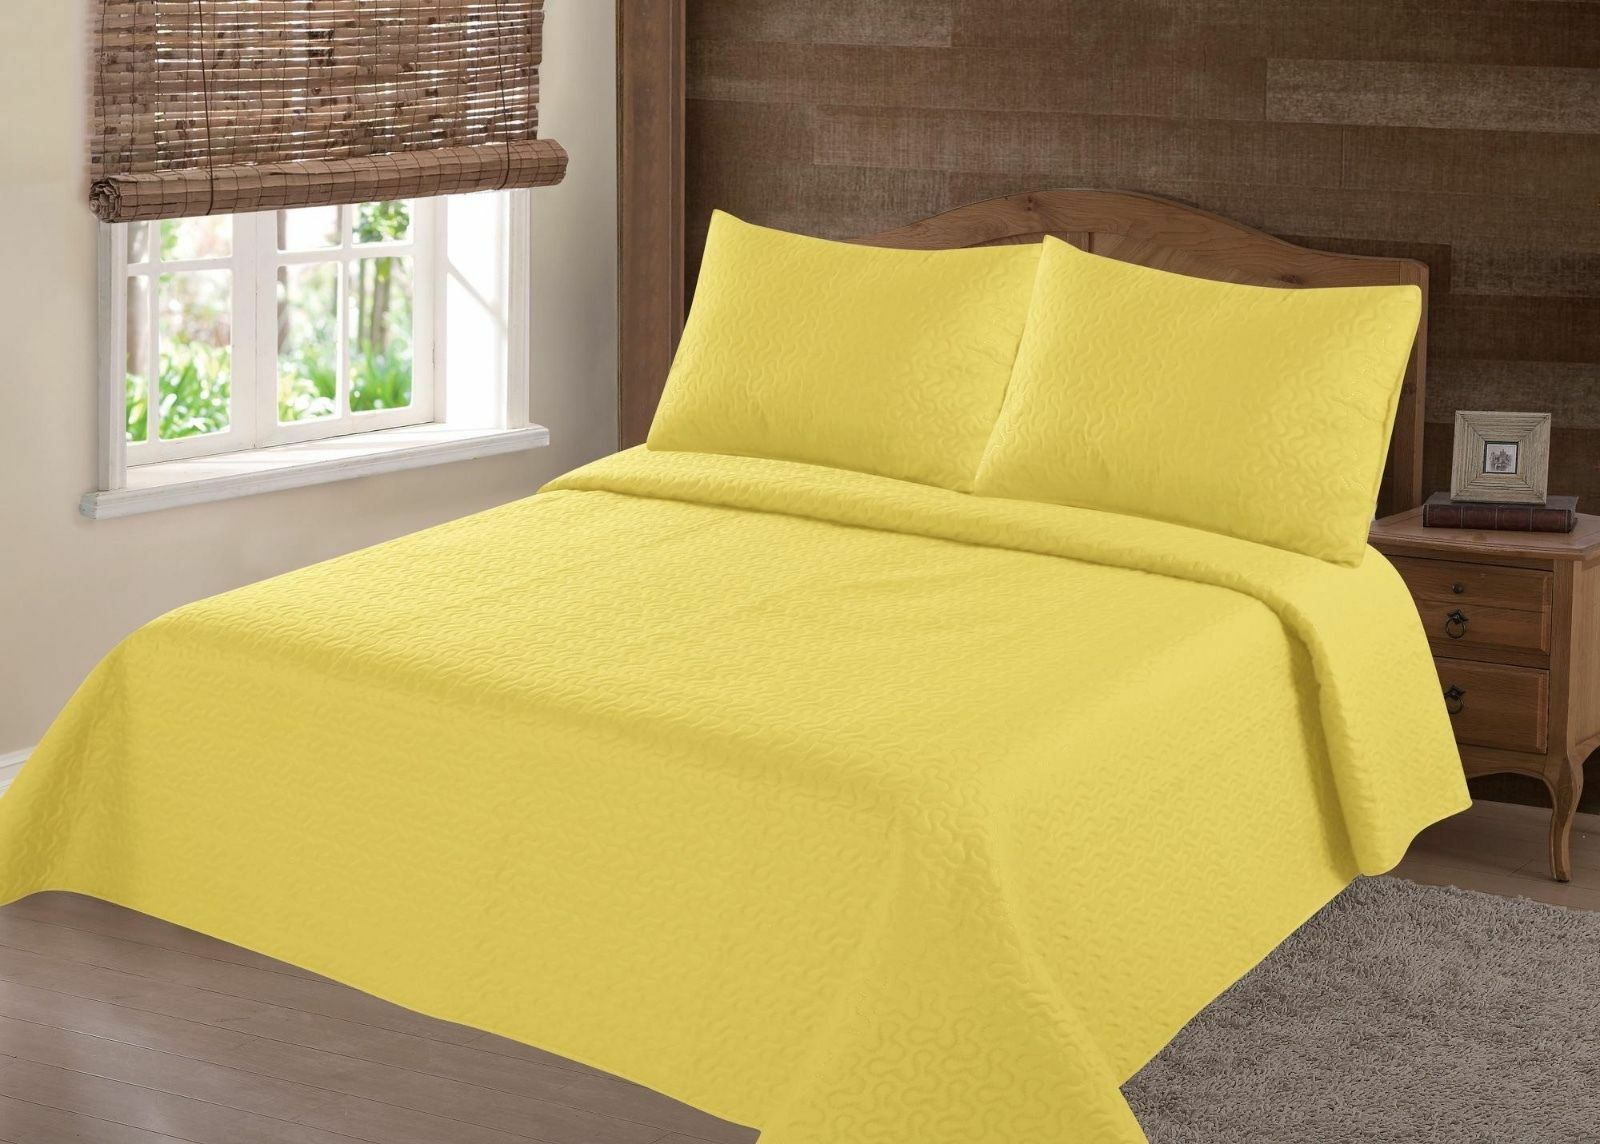 MIDWEST YELLOW NENA SOLID QUILT BEDDING BEDSPREAD COVERLET P